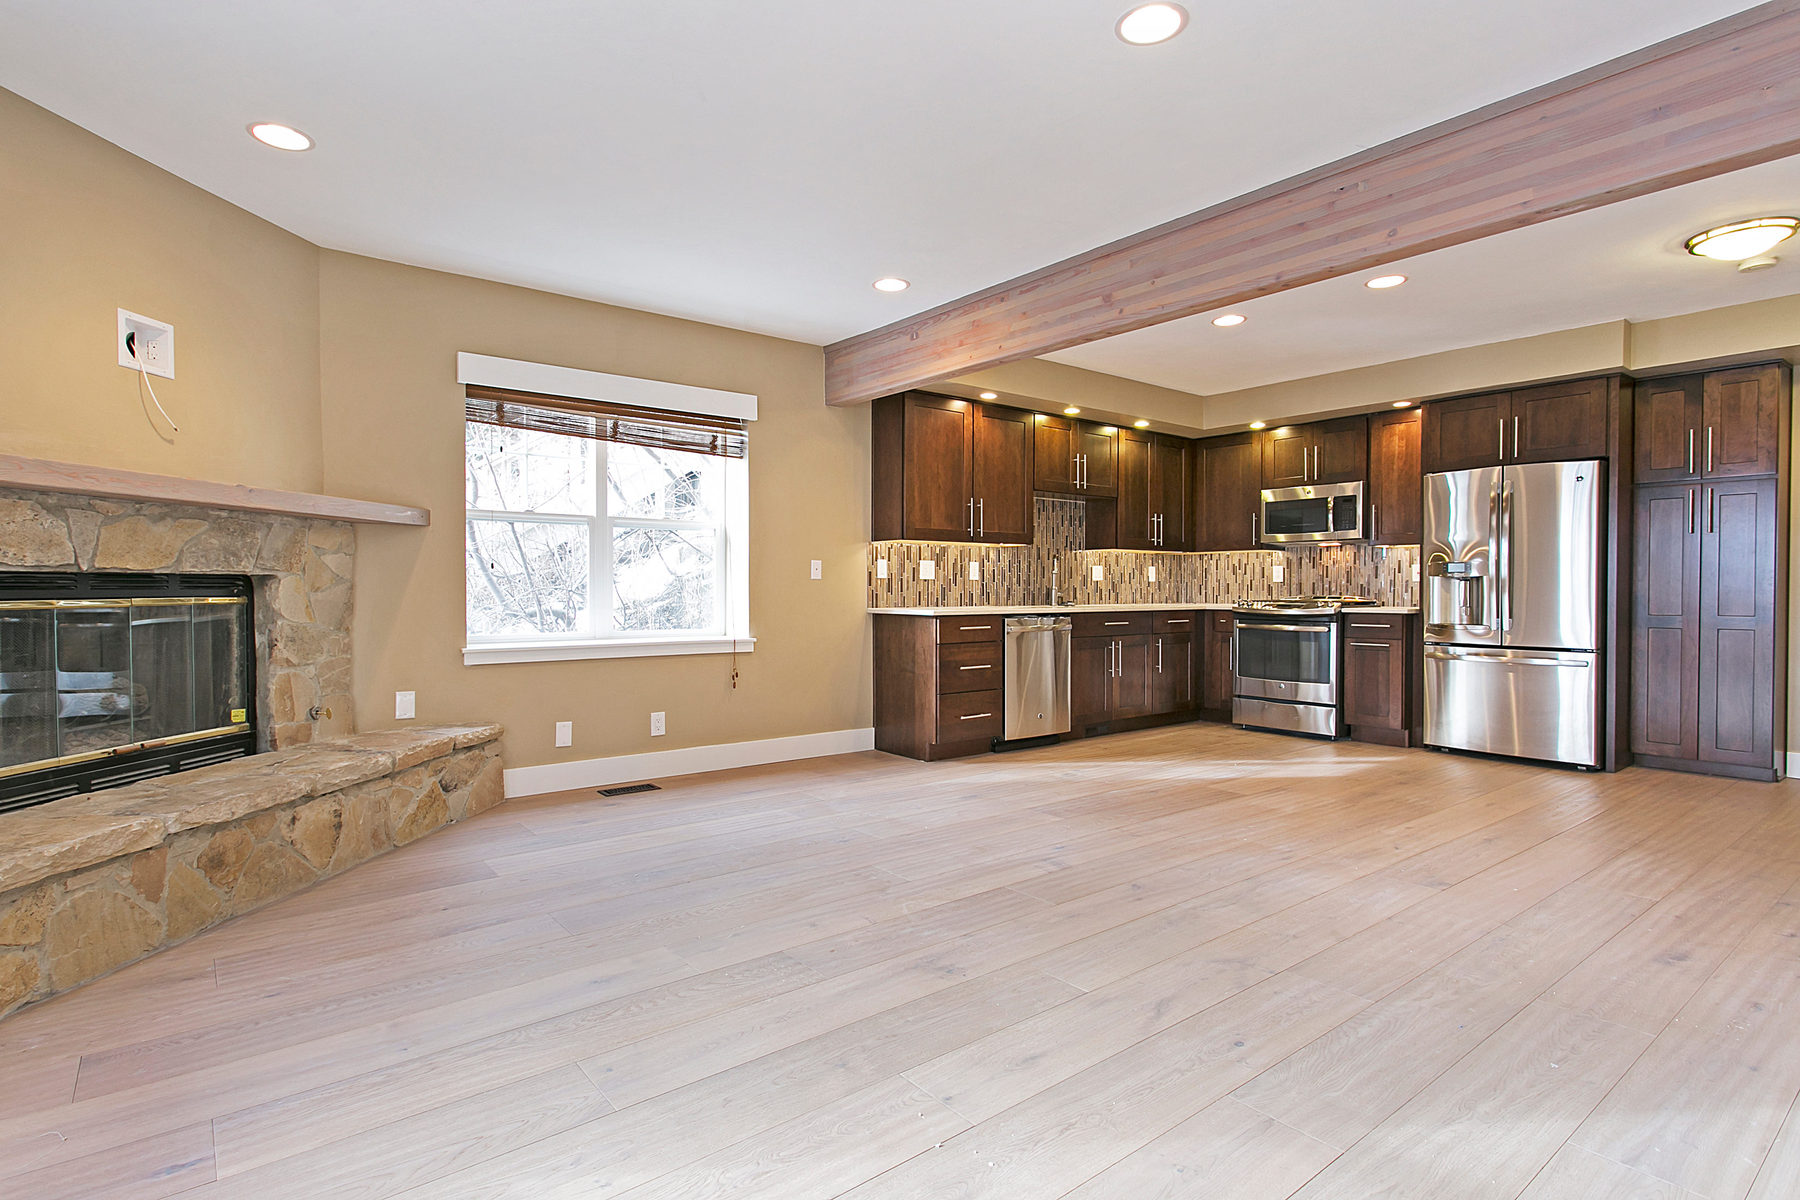 Single Family Home for Sale at Wonderful Remodel on Daly! 64 Daly Avenue Unit #B Park City, Utah 84060 United States